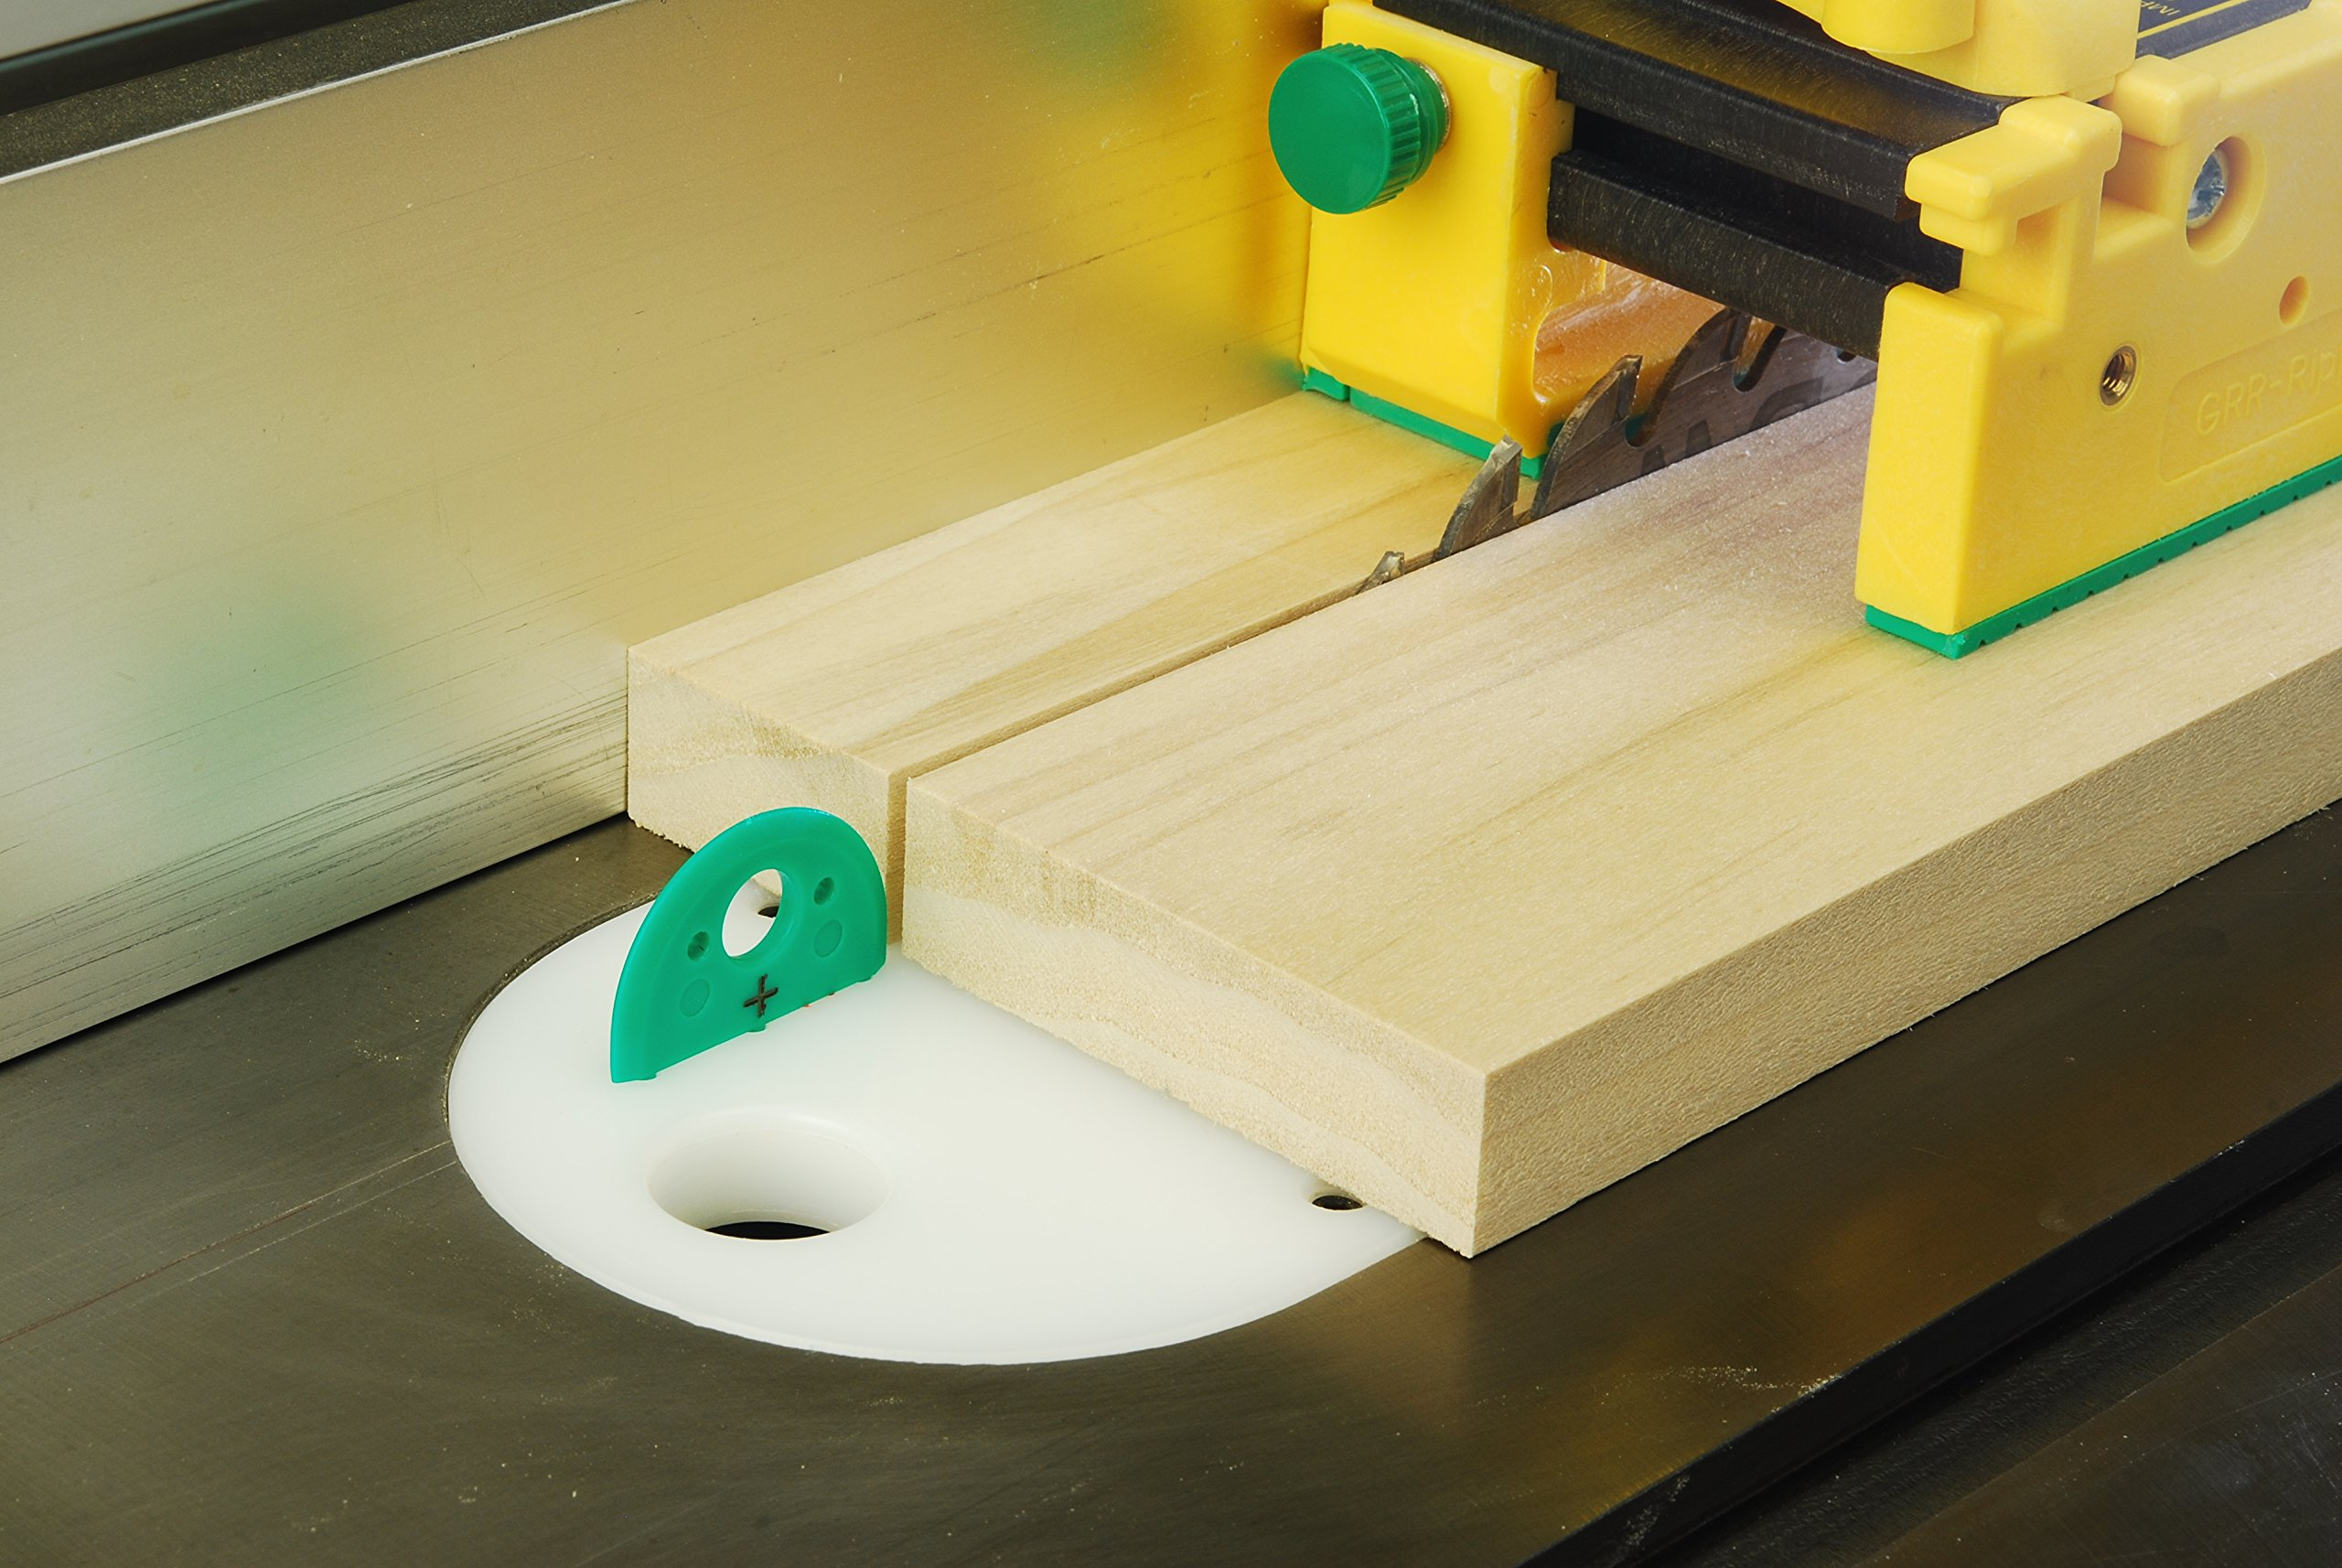 MJ SPLITTER for 1/8'' Kerf Saw Blades by MICROJIG. Table Saw Safety Splitter System